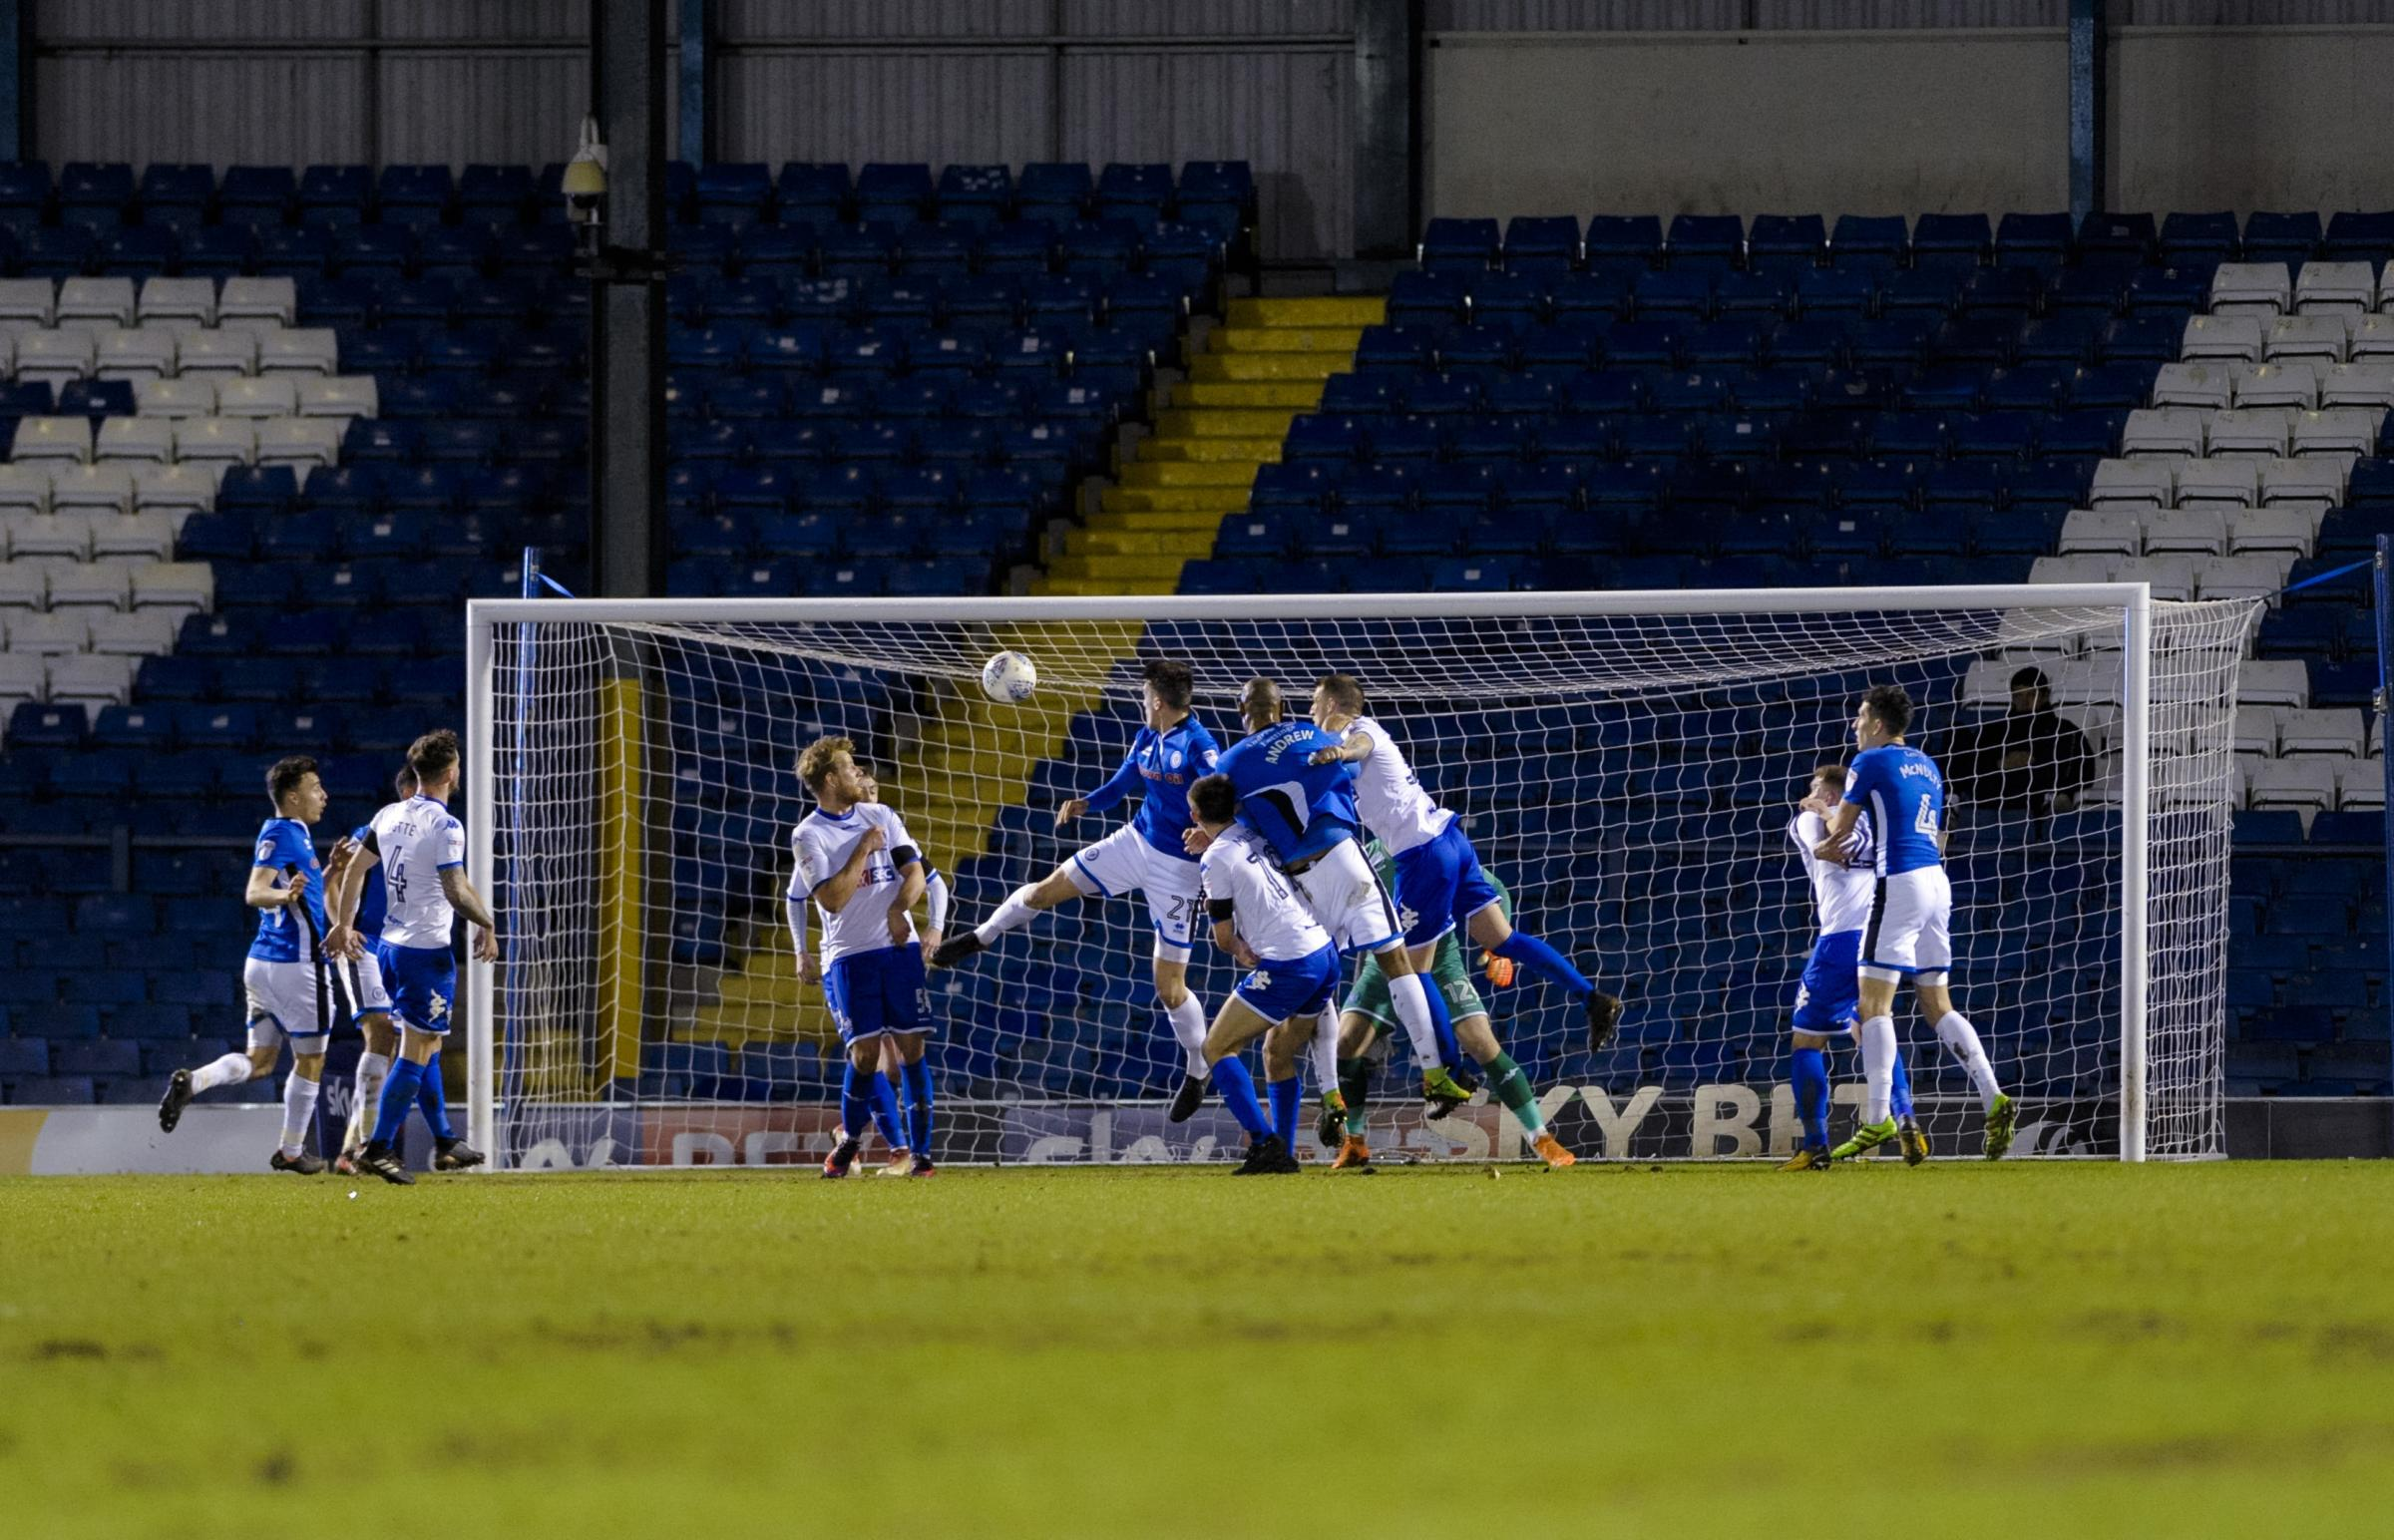 Rochdale defender Ryan Delaney (21) opens the scoring during the Sky Bet League 1 match between Bury FC and Rochdale at Gigg Lane. Picture by Andy Whitehead